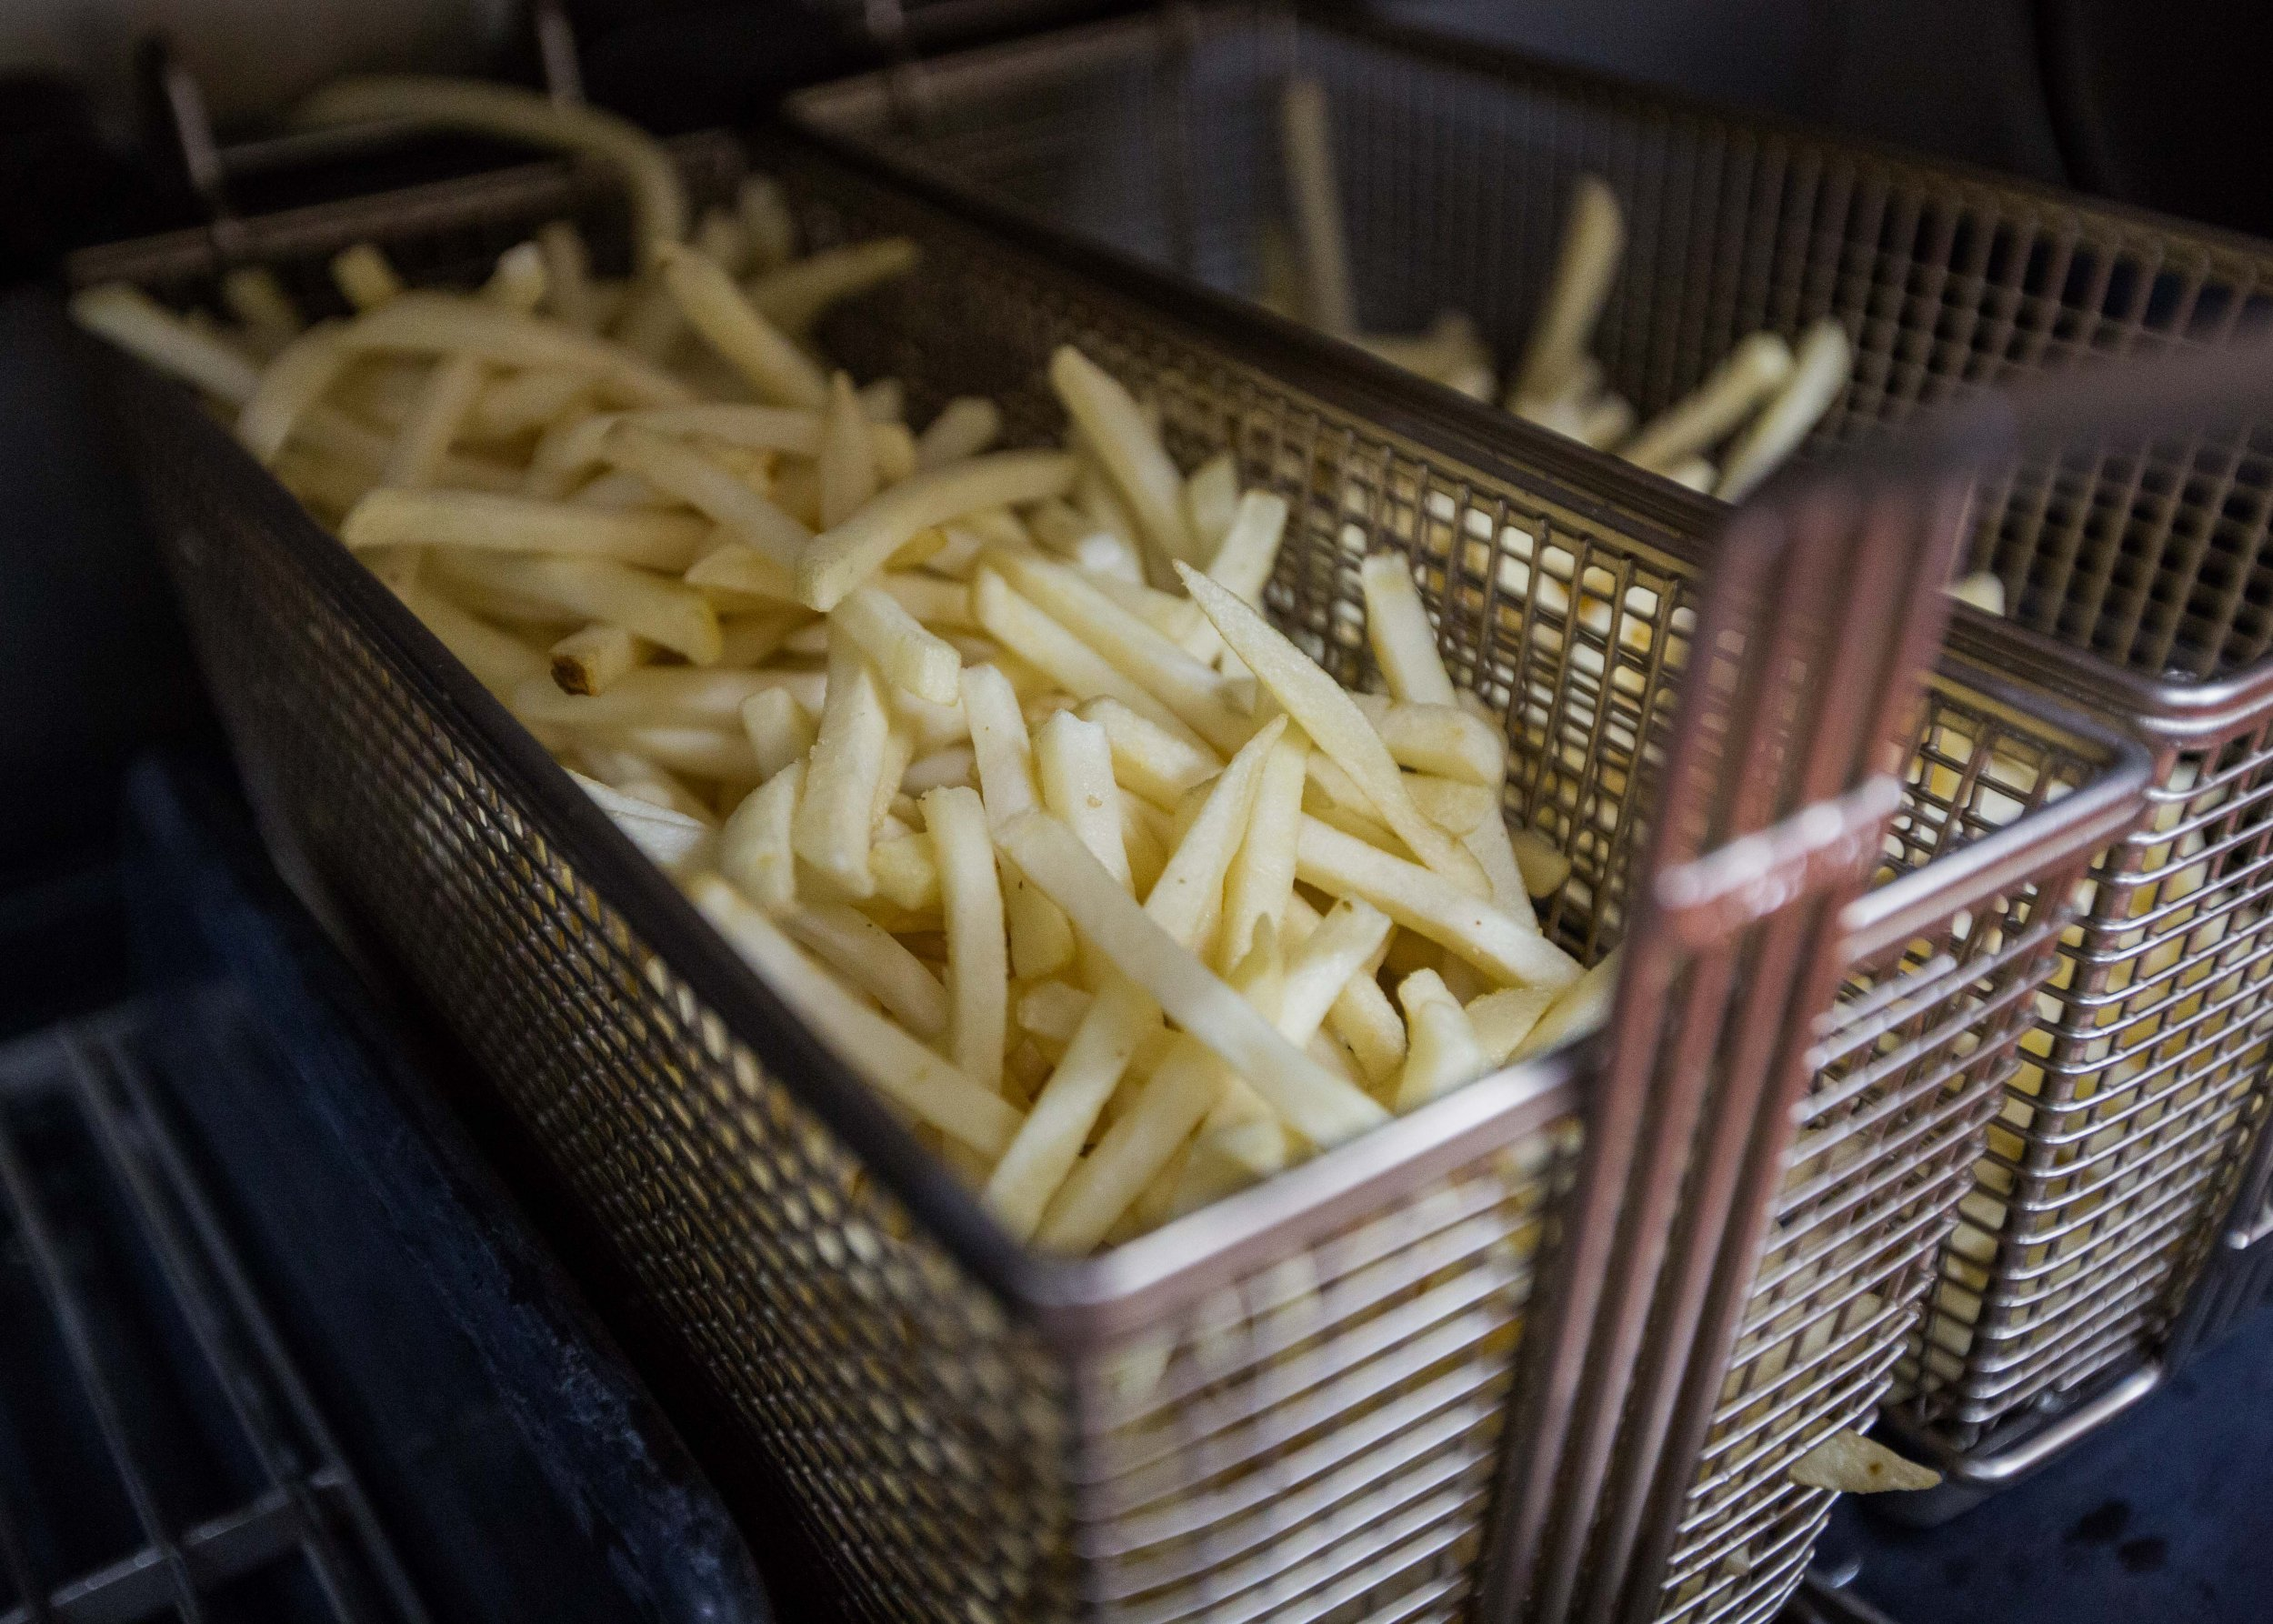 can you lose weight with french fries